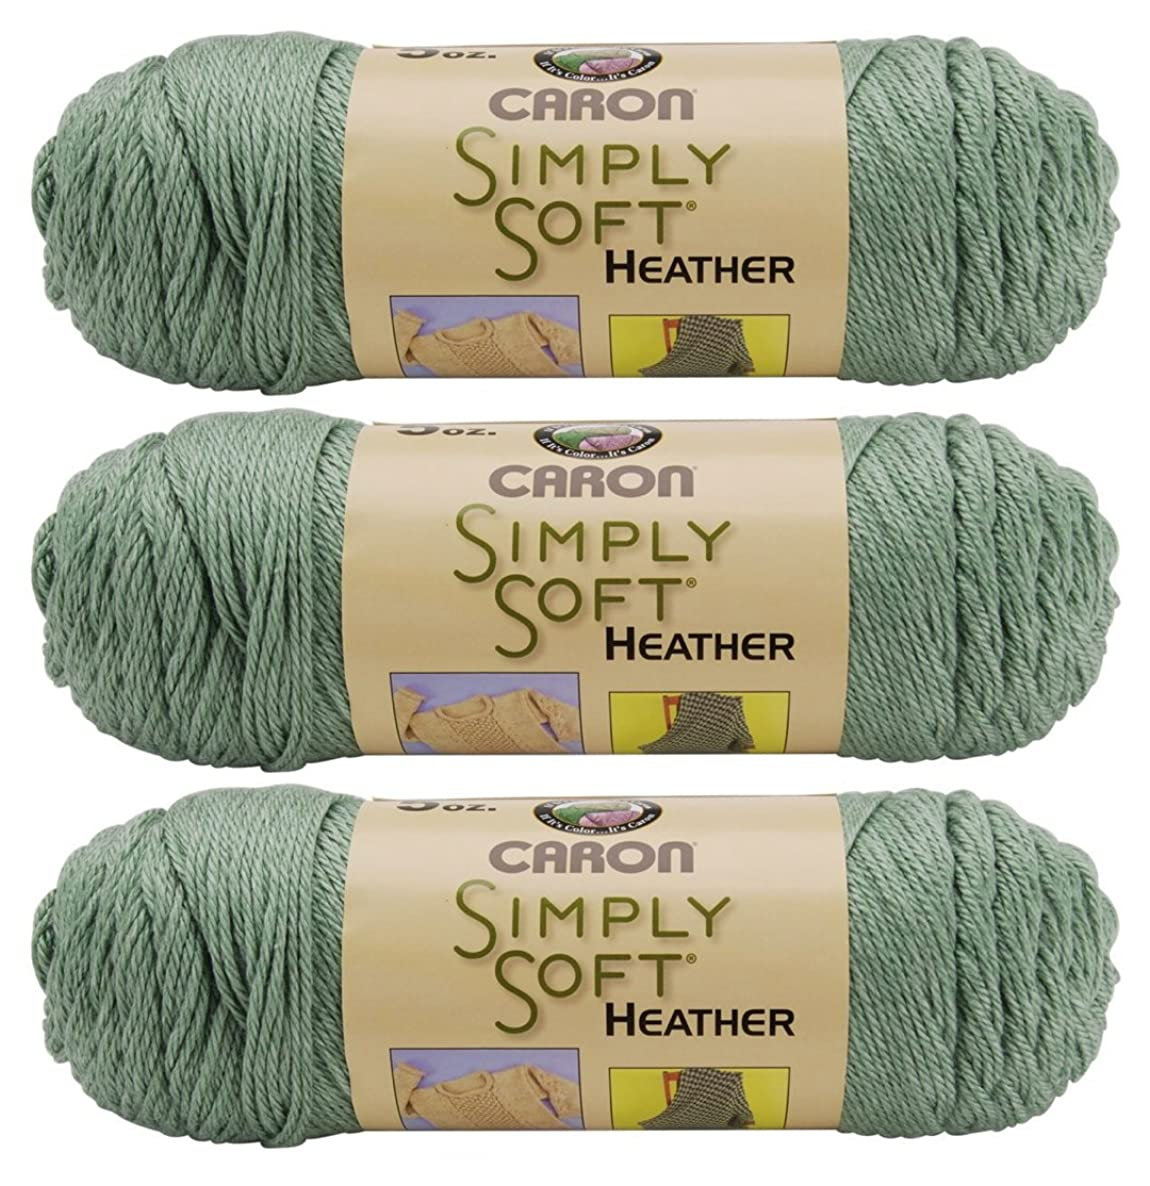 Bulk Buy: Caron Simply Soft Heather Yarn (3-Pack) Woodland H9700H-9503